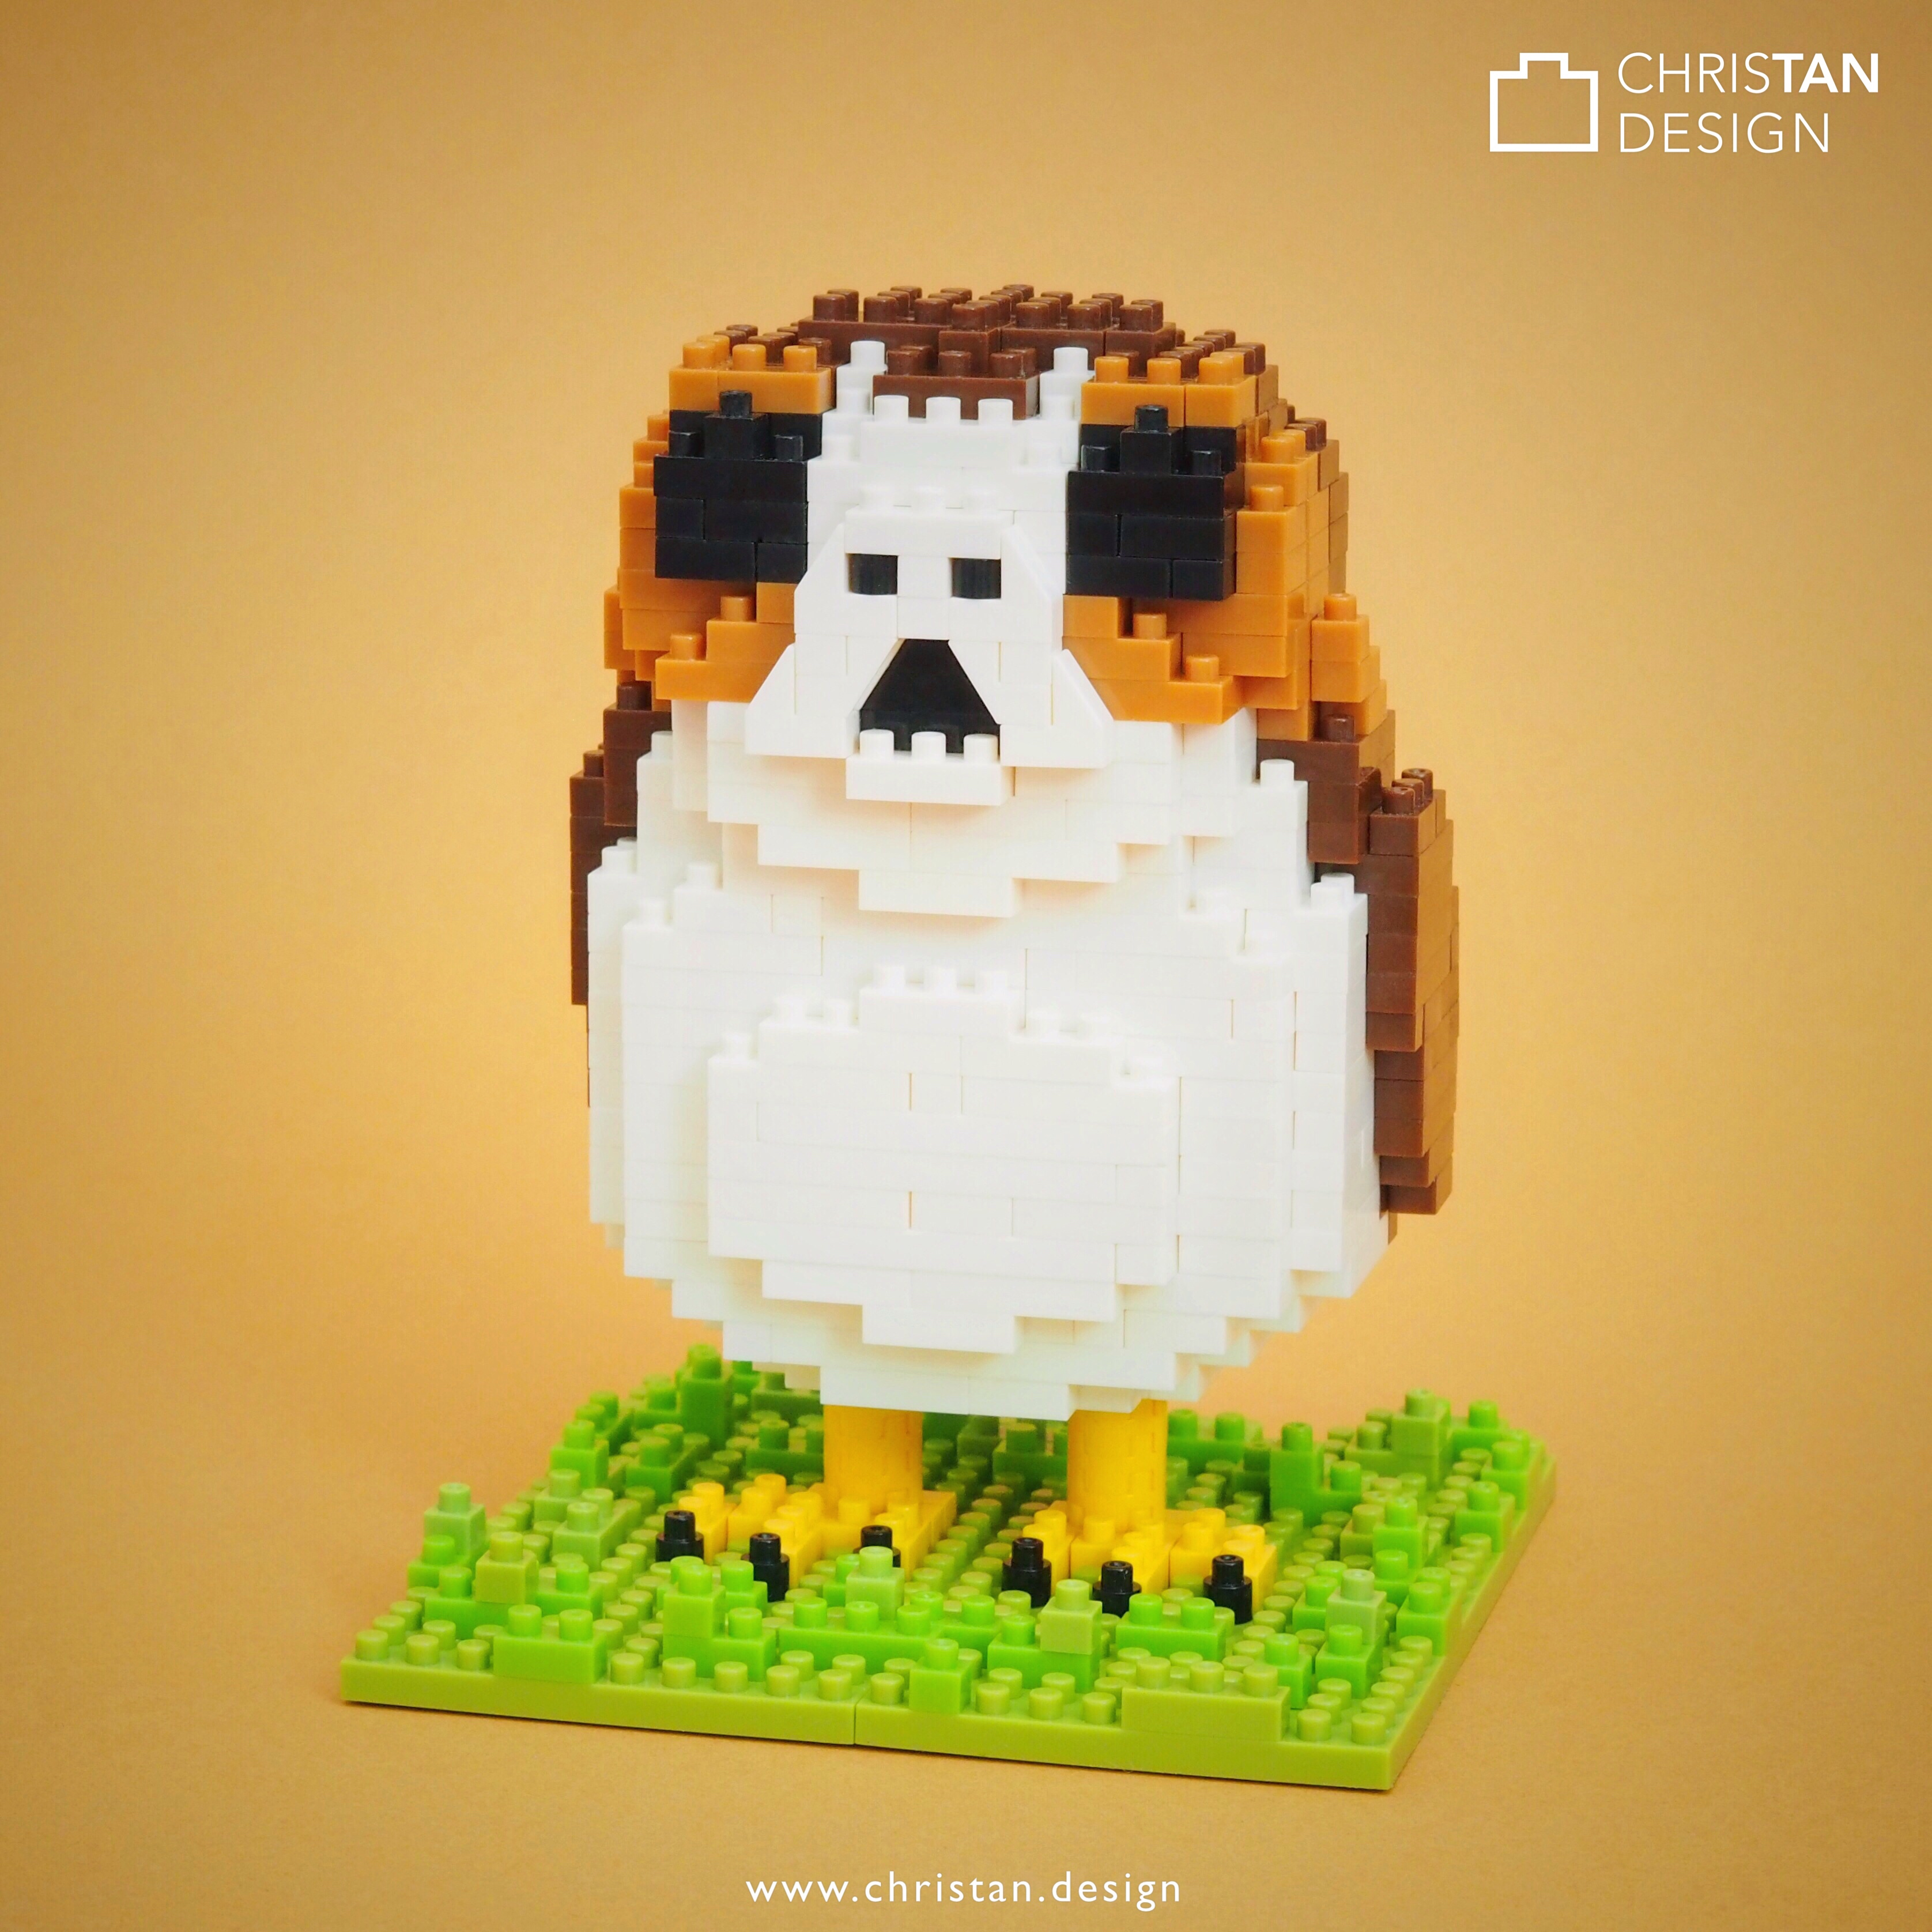 Porg from Stars Wars: The Last Jedi